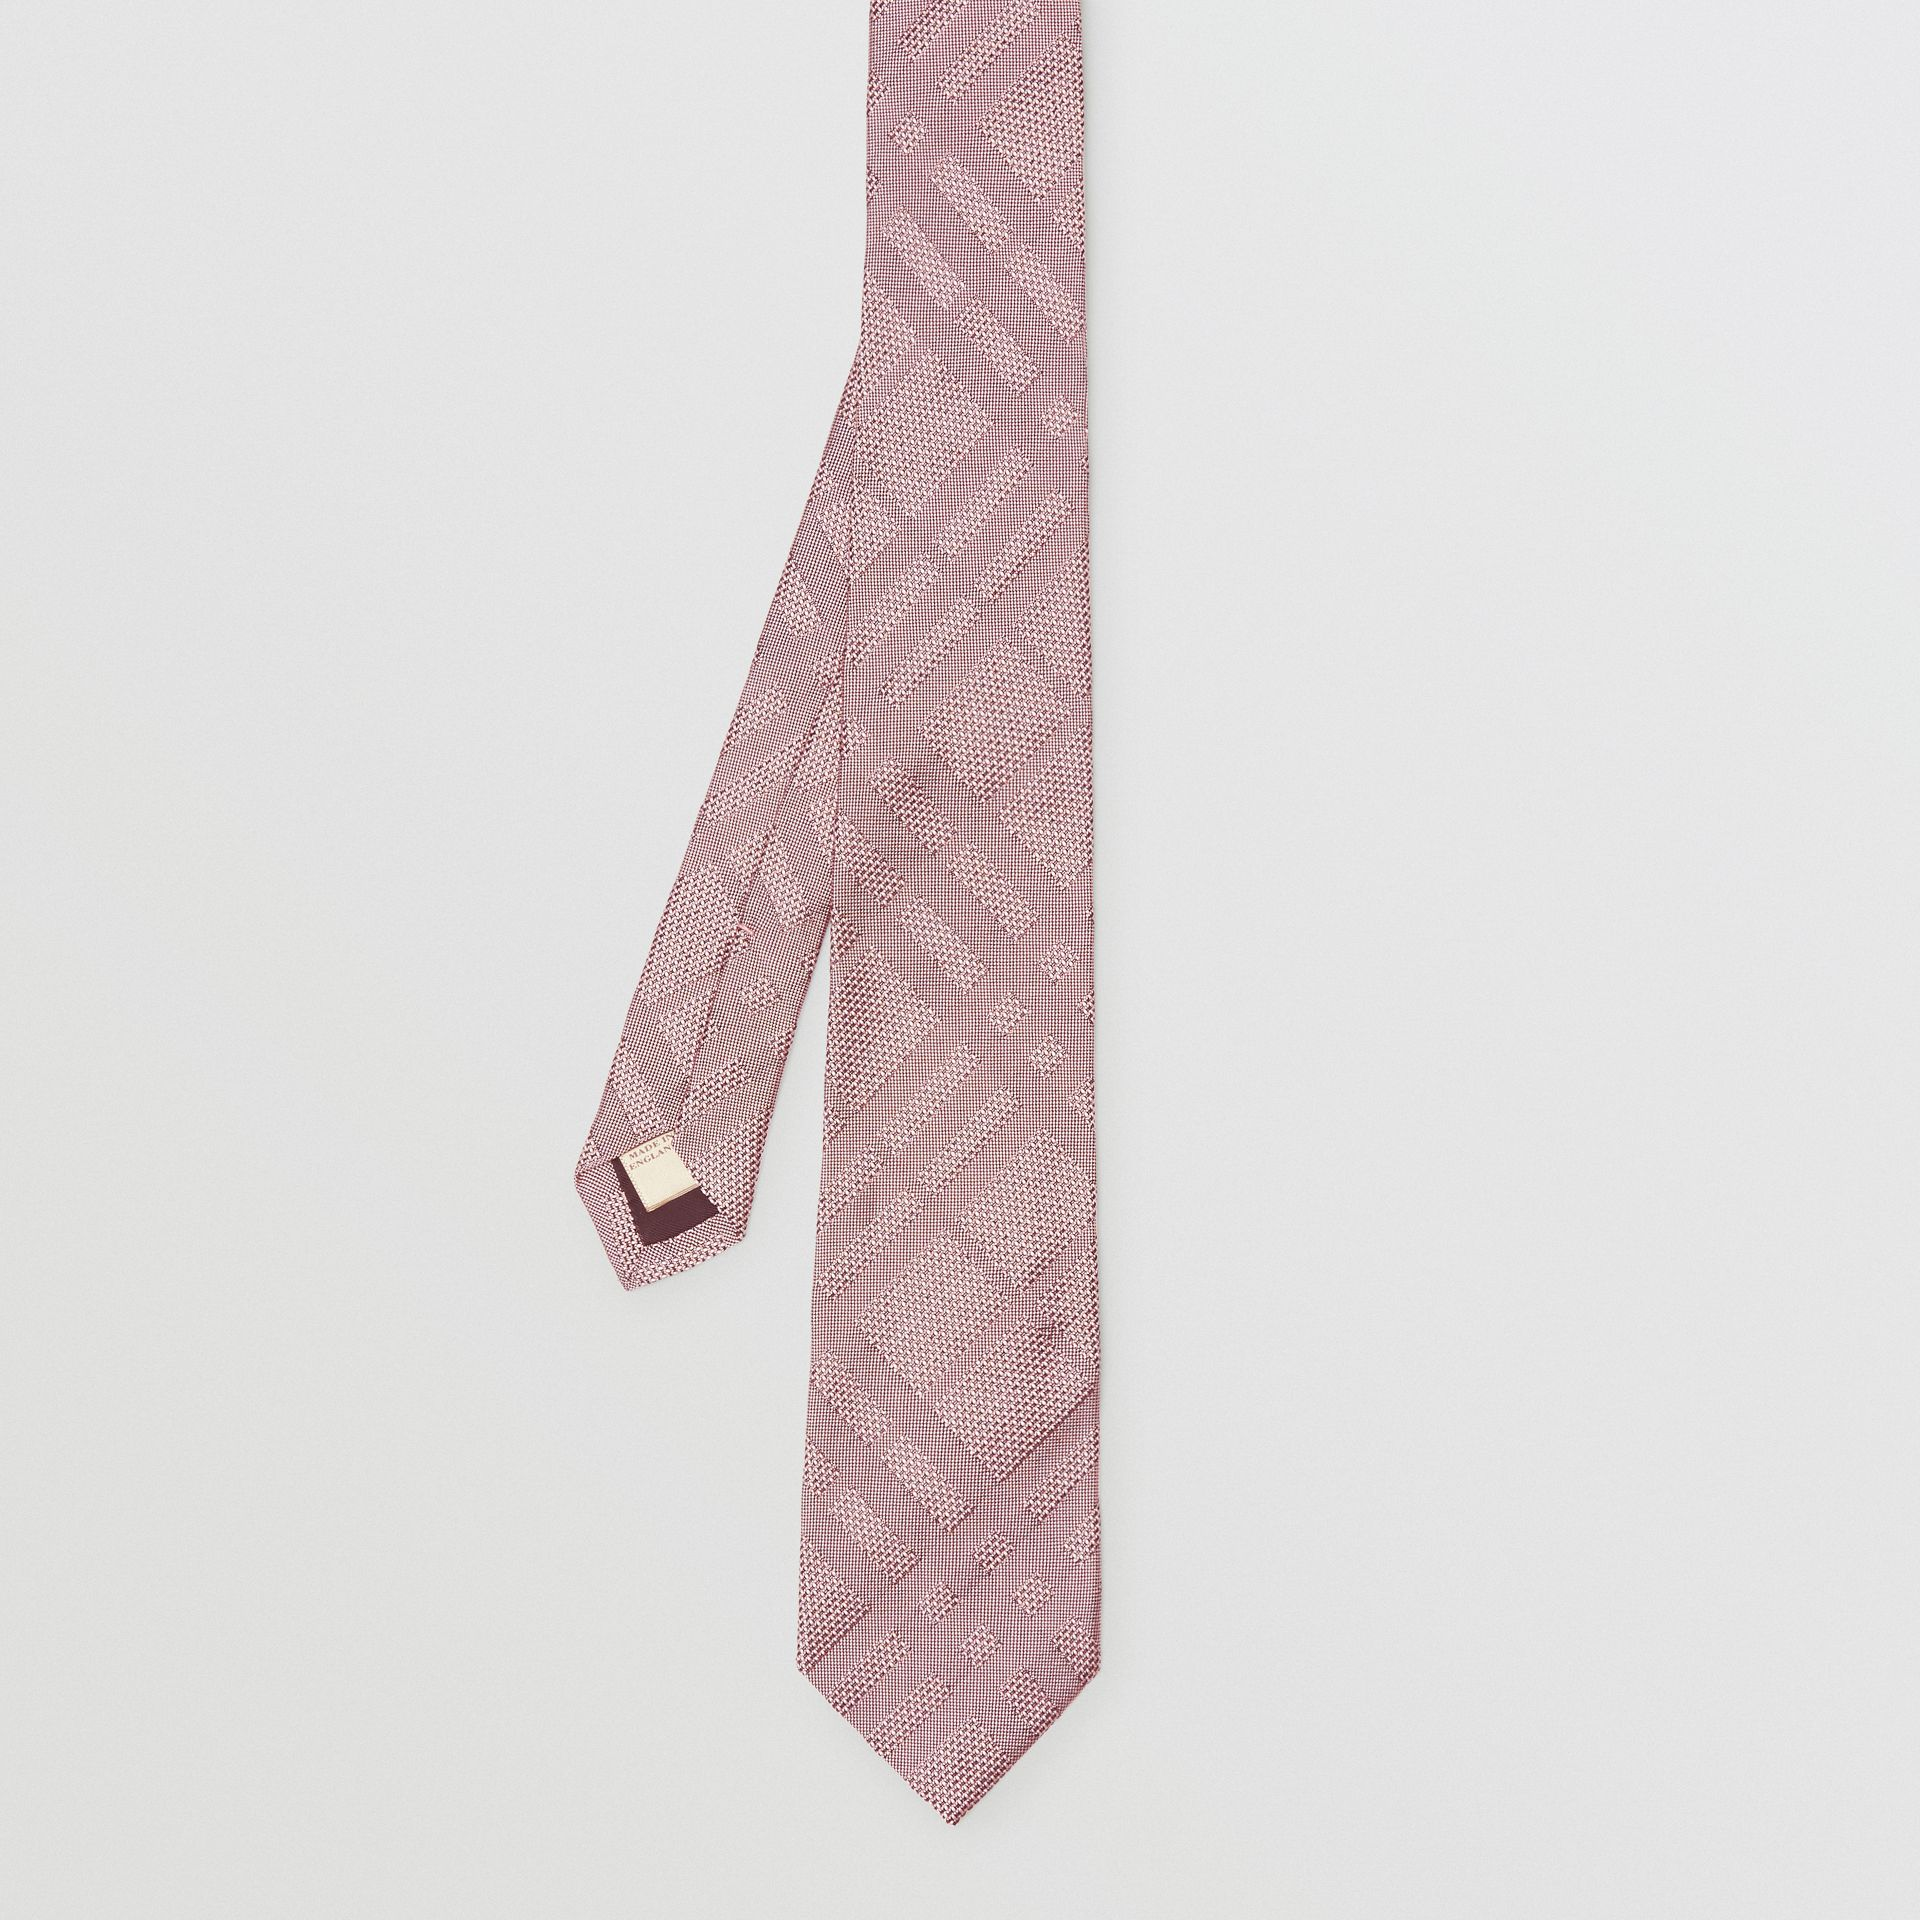 Modern Cut Check Silk Jacquard Tie in Alabaster Pink - Men | Burberry - gallery image 4